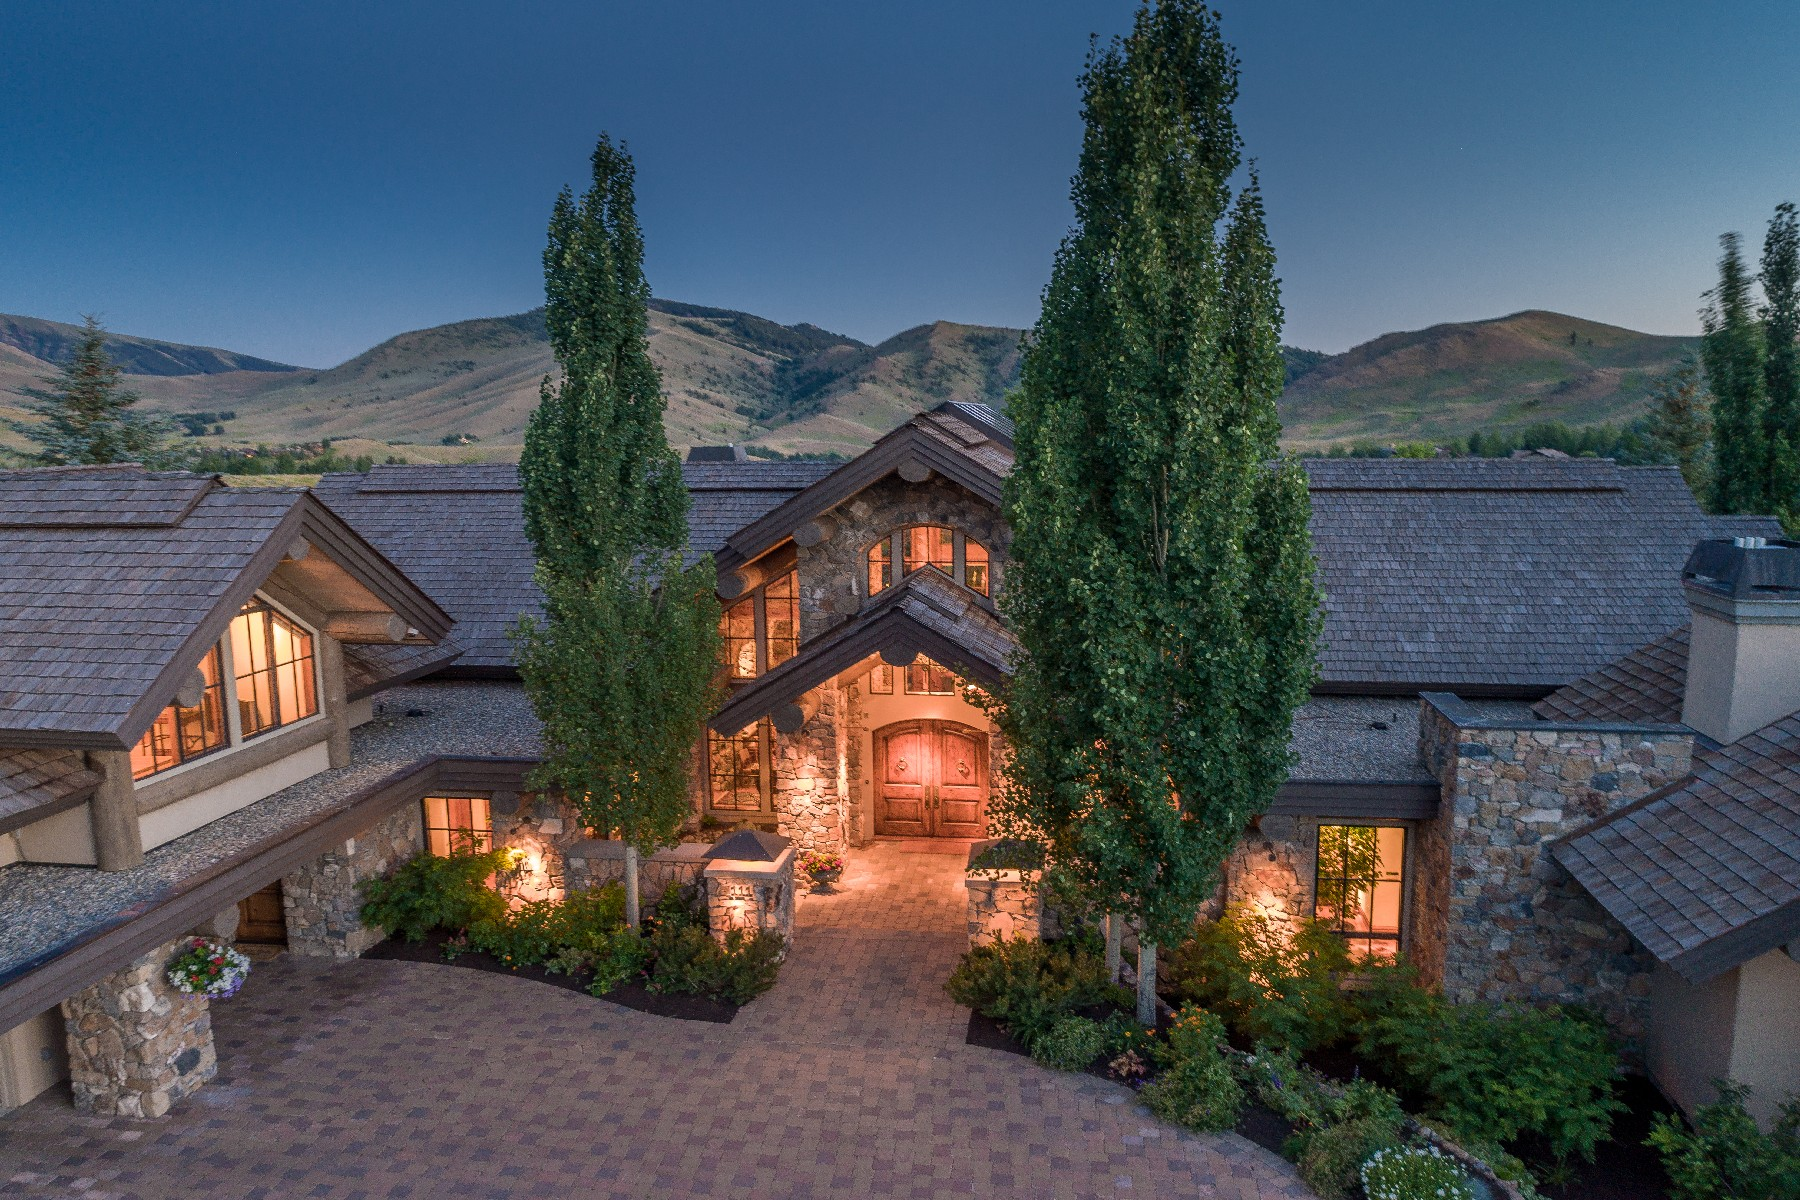 Single Family Home for Sale at Luxury Sun Valley Estate 111 Sagewillow Rd Sun Valley, Idaho 83353 United States